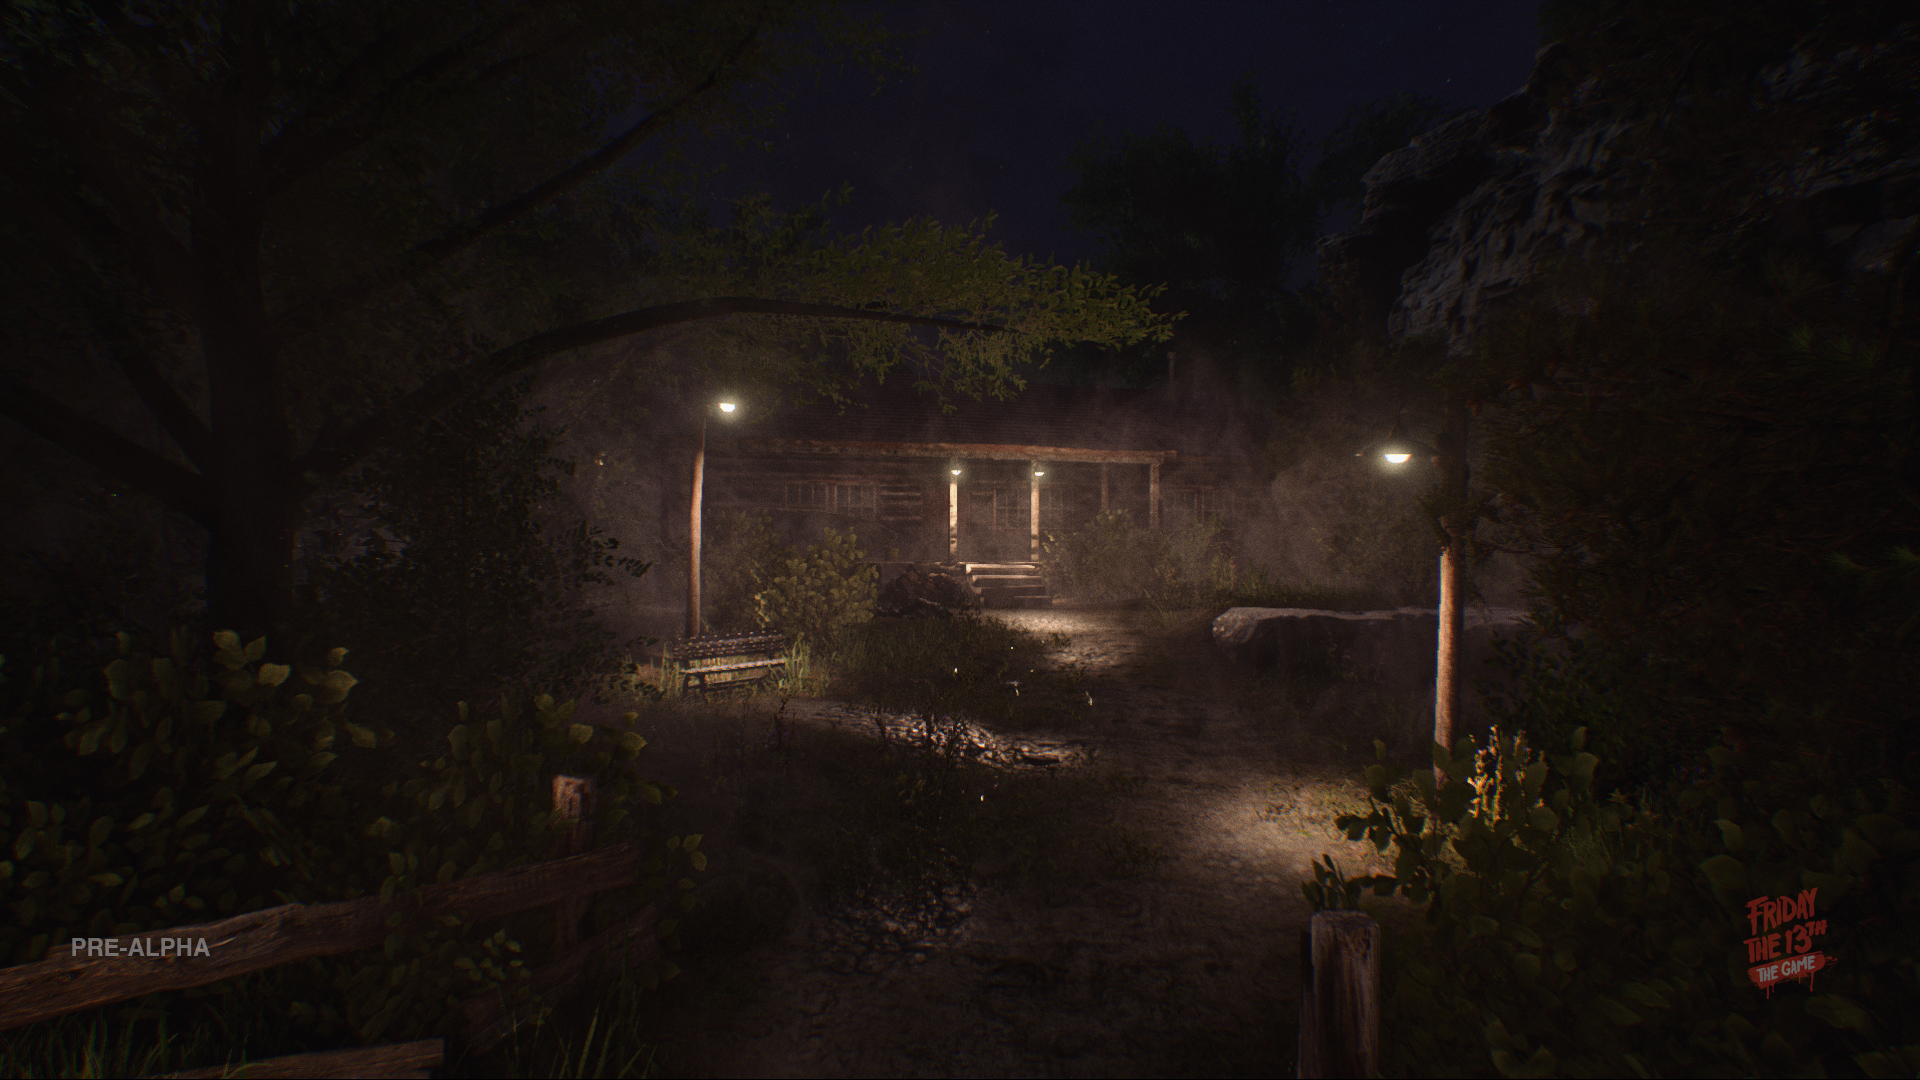 Friday The 13th The Game Narrative Campaign Coming With Free